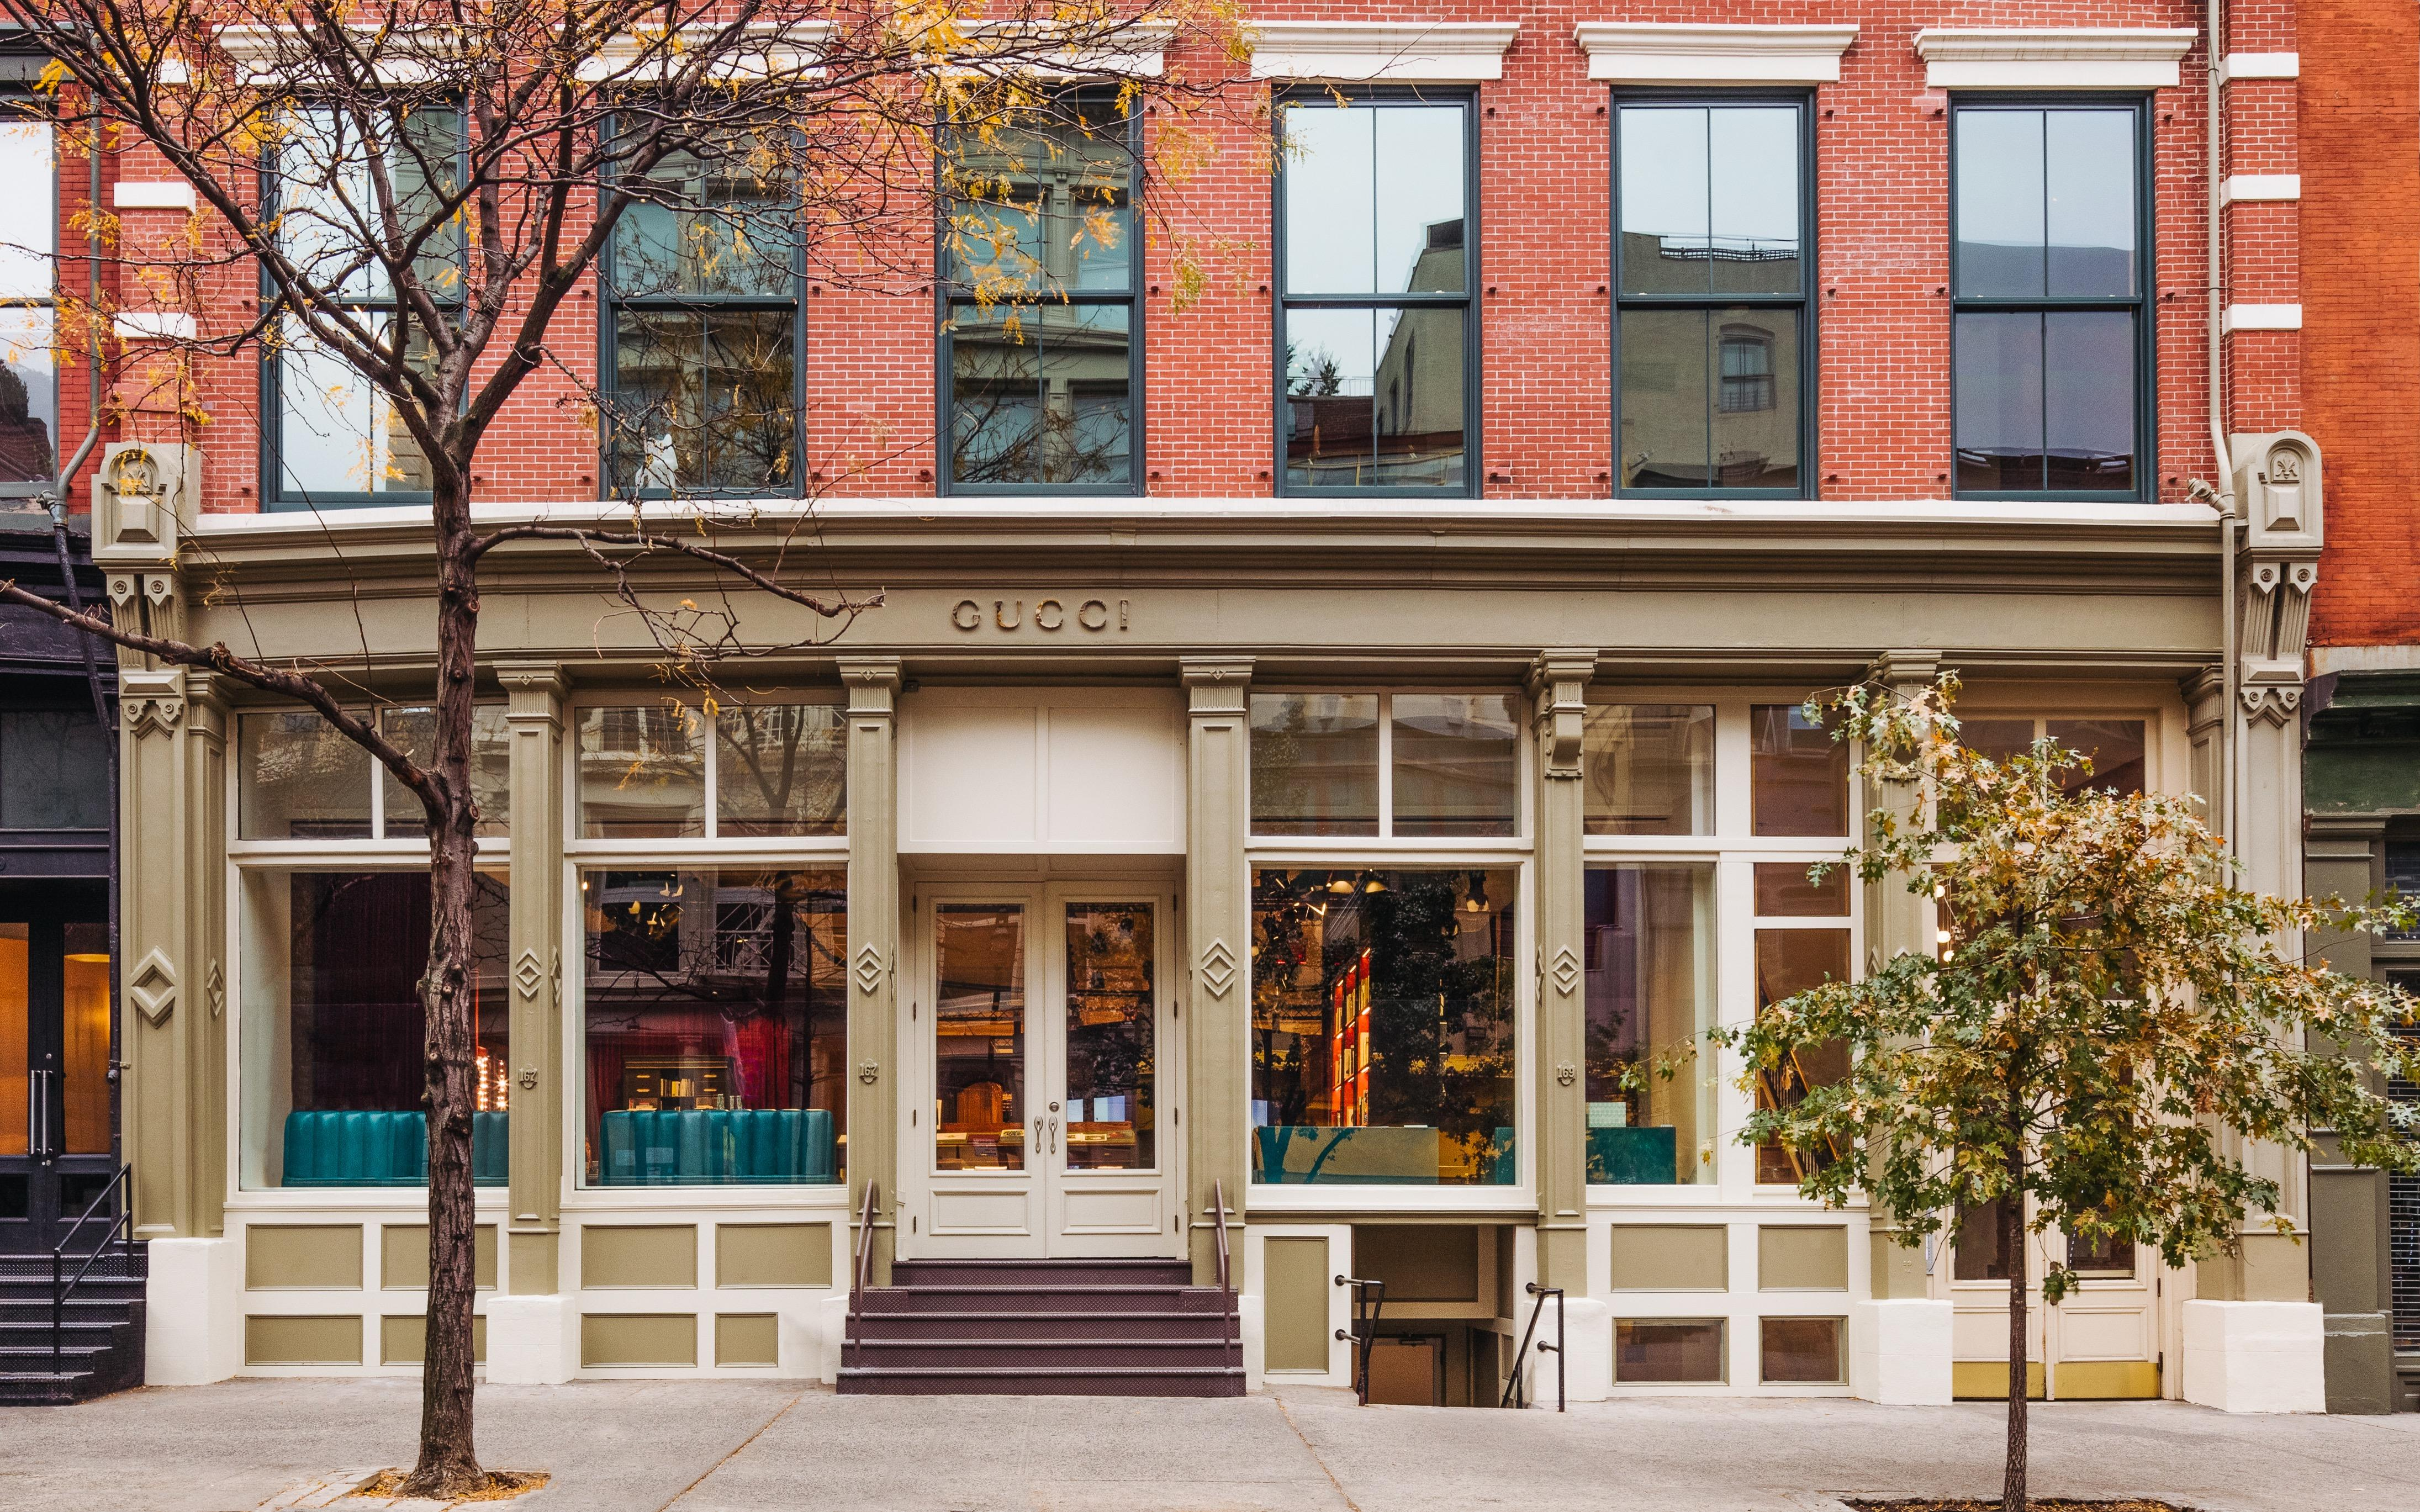 Gucci Wooster Bookstore image 0